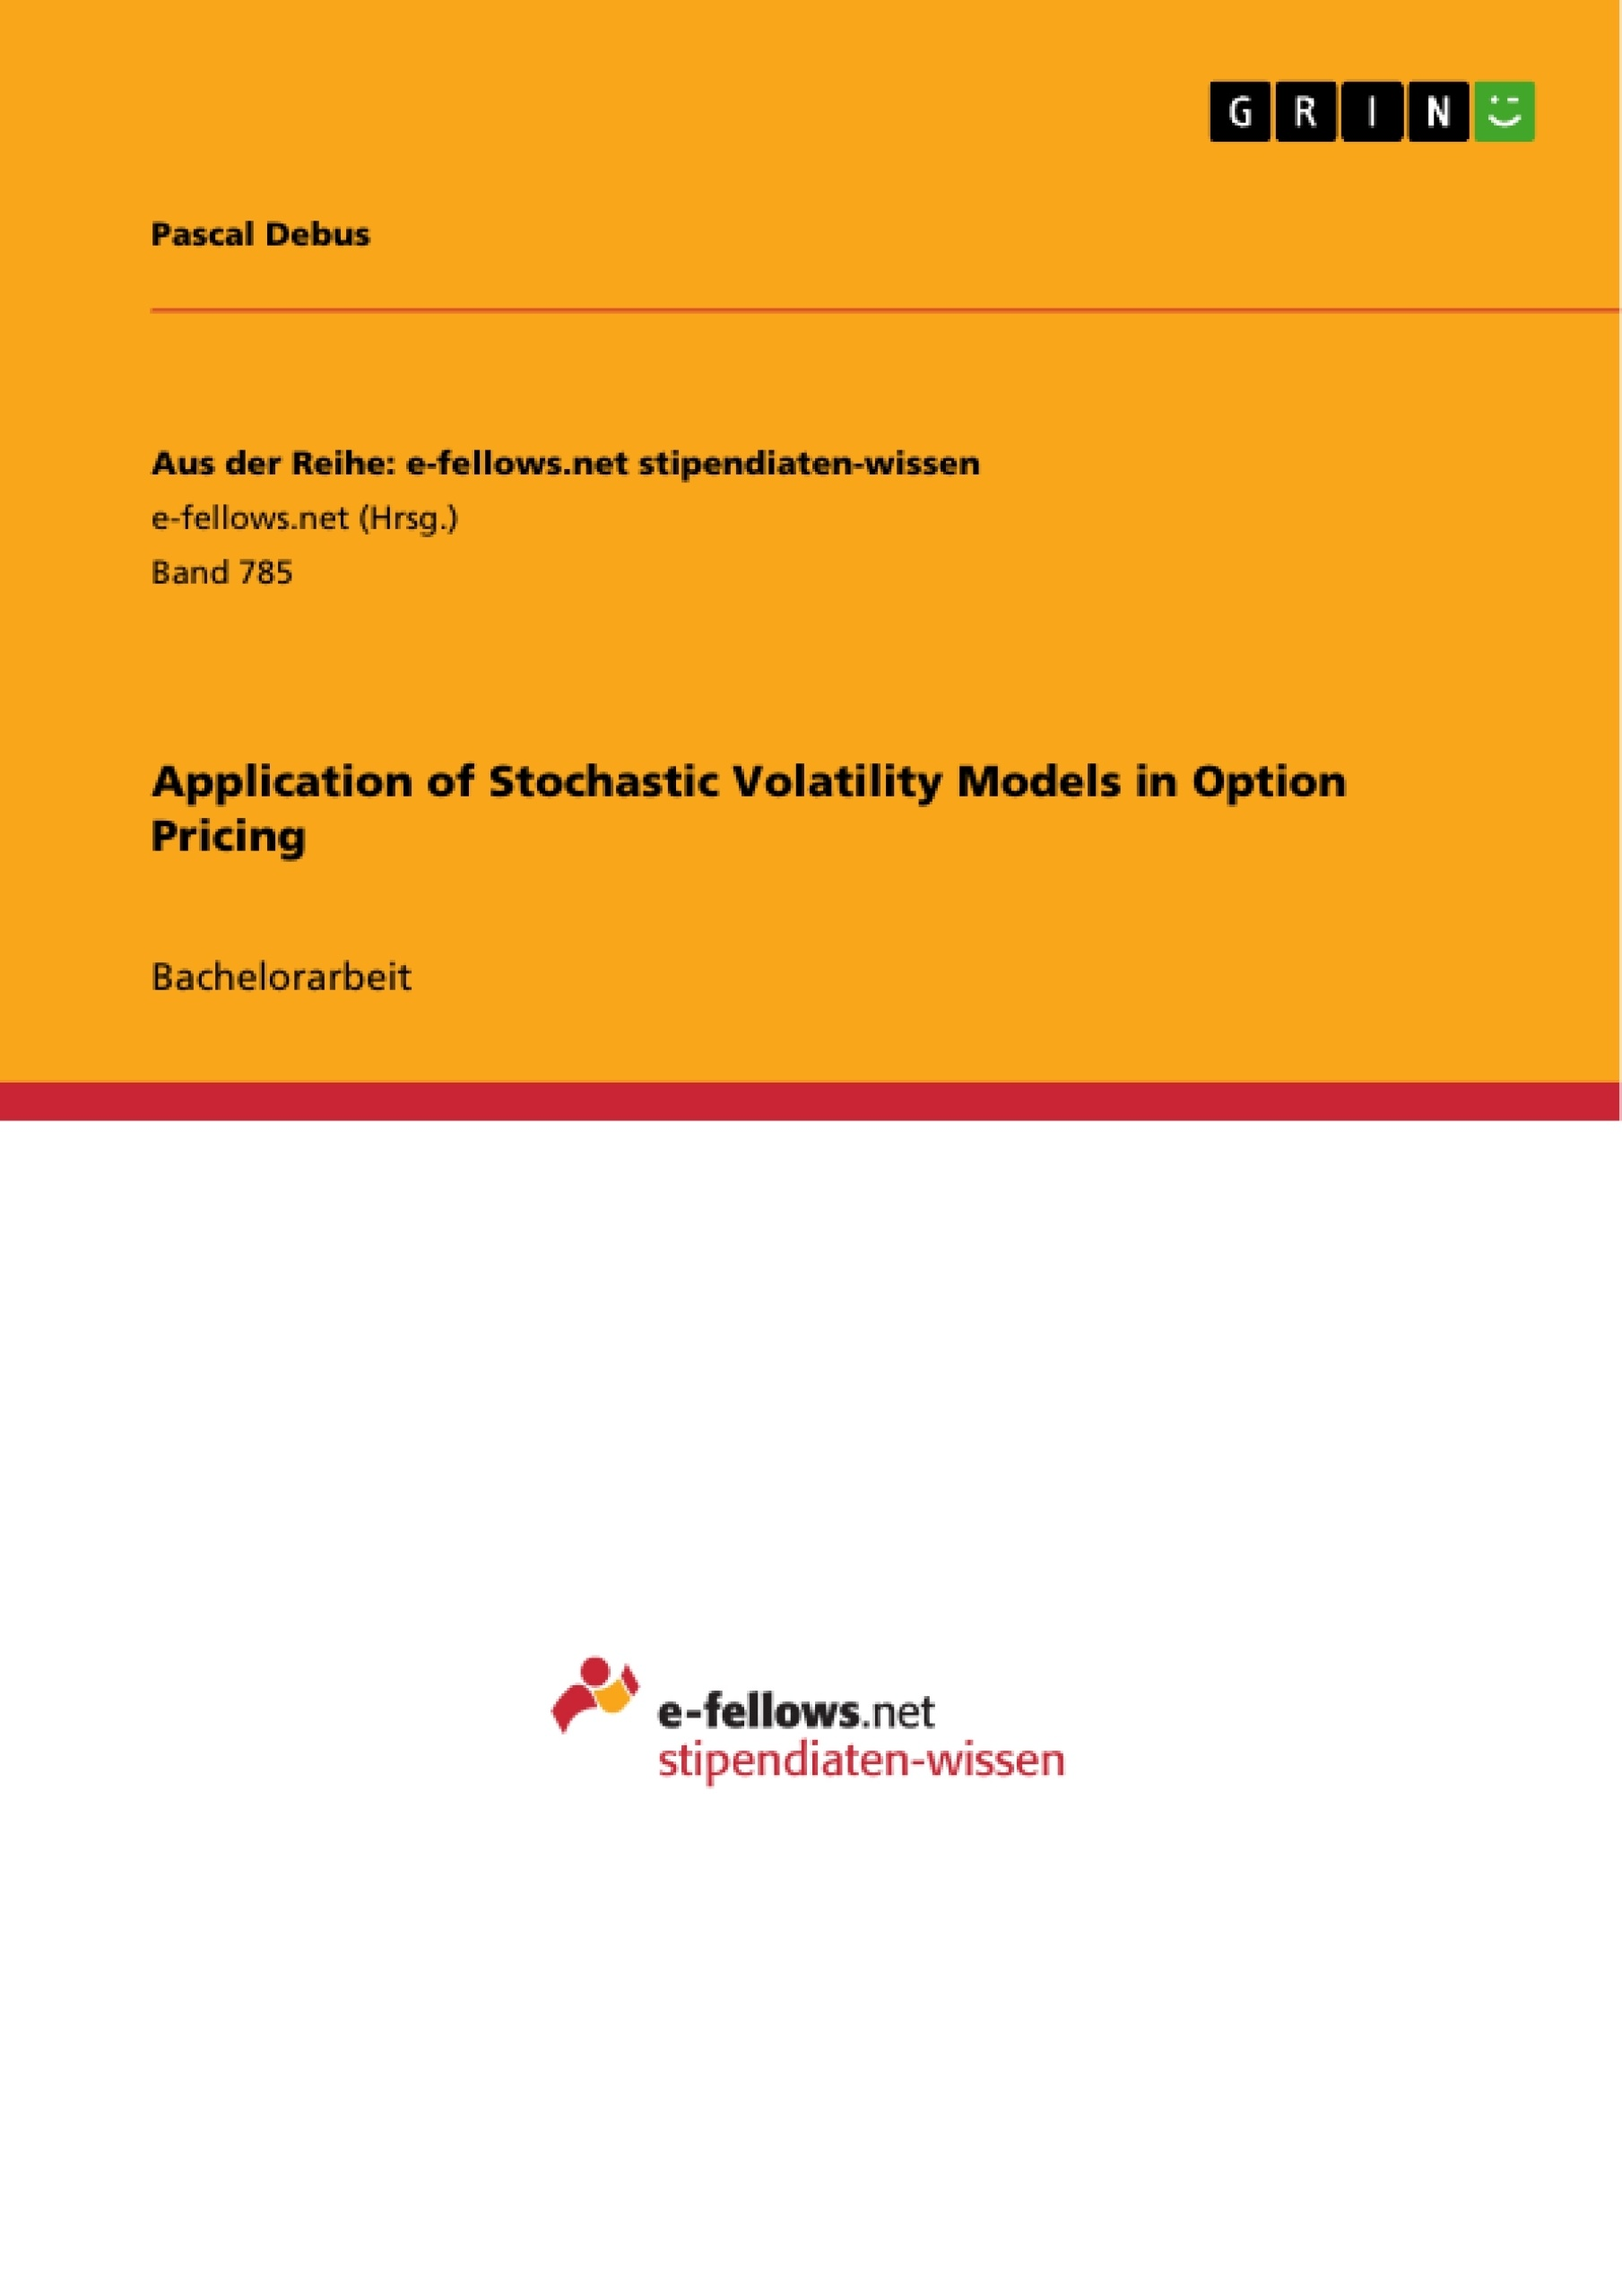 Titel: Application of Stochastic Volatility Models in Option Pricing